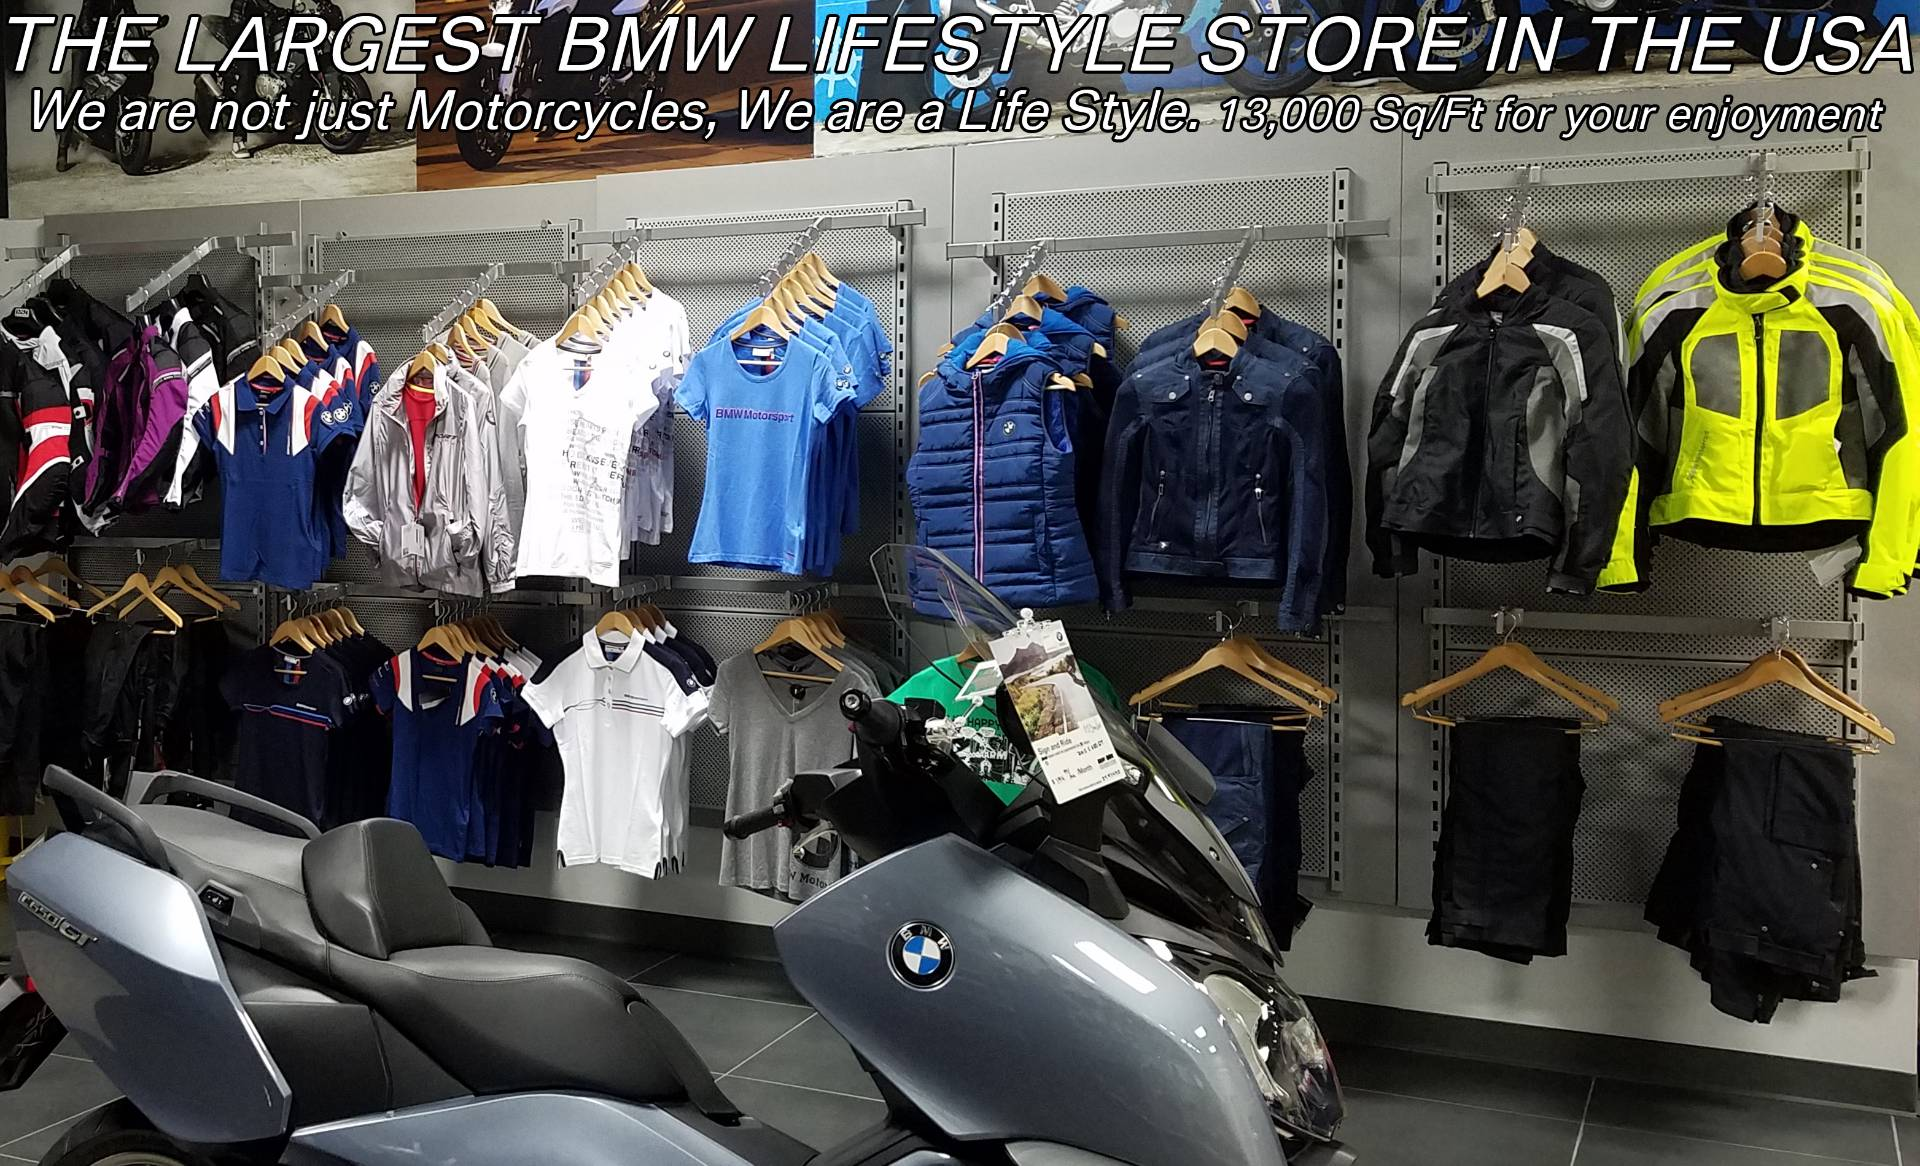 Used 2014 BMW R 1200 GS for sale, Pre-owned BMW R1200GS for sale, BMW Motorcycle Adventure, used BMW GS Fire Blue, BMW Motorcycles of Miami, Motorcycles of Miami, Motorcycles Miami, New Motorcycles, Used Motorcycles, pre-owned. #BMWMotorcyclesOfMiami #MotorcyclesOfMiami - Photo 32